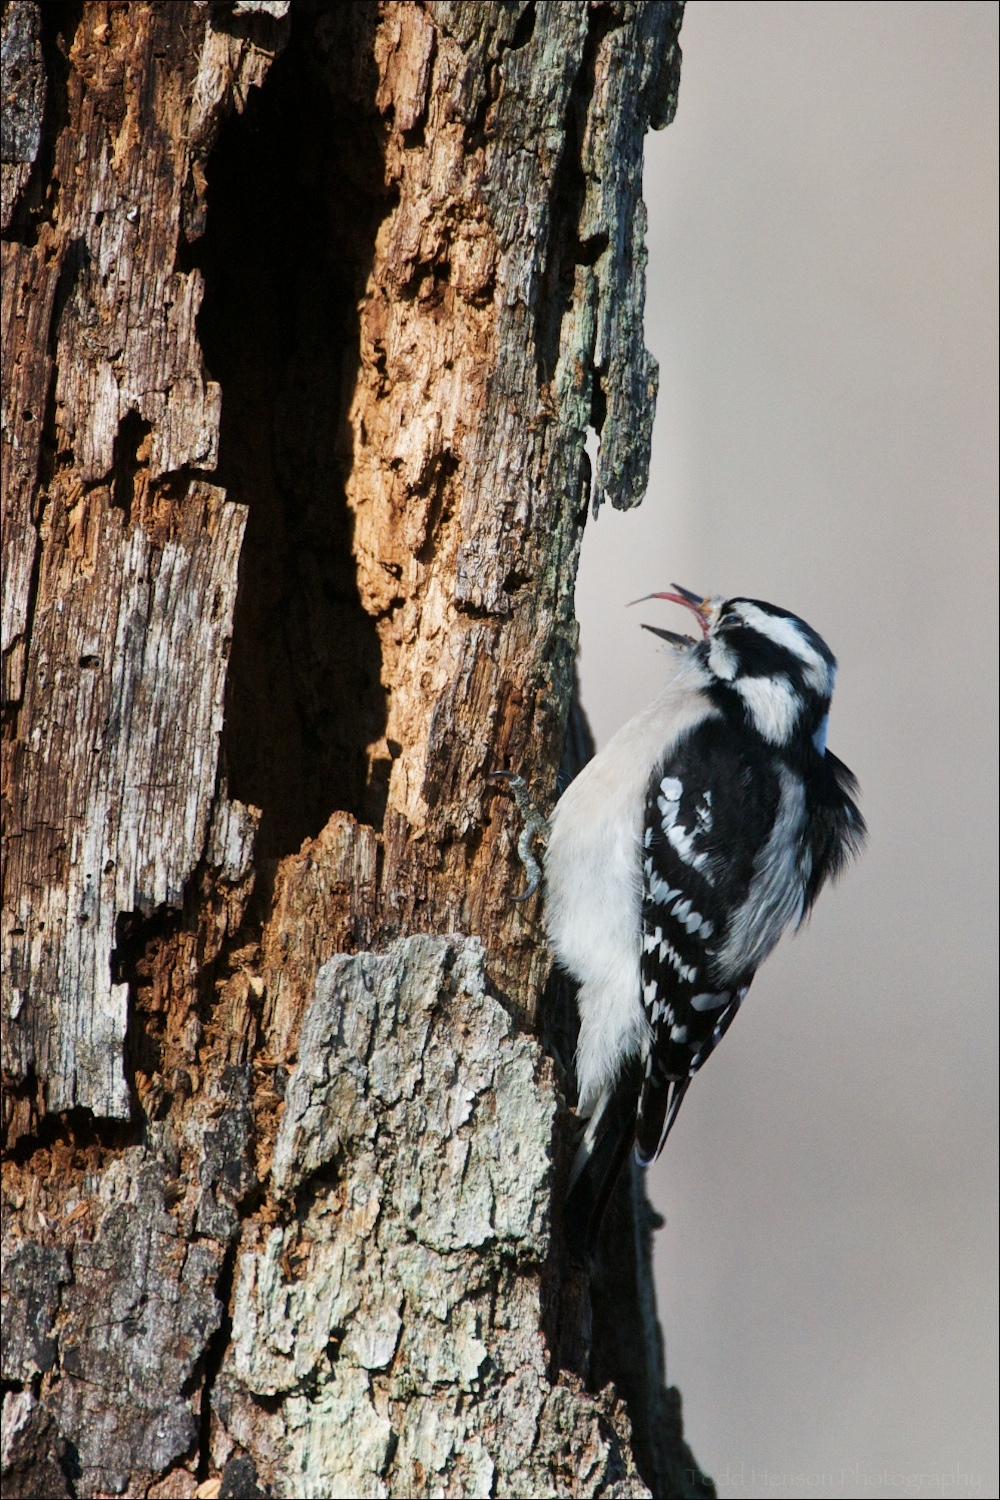 Exposed tongue of Female Downy Woodpecker